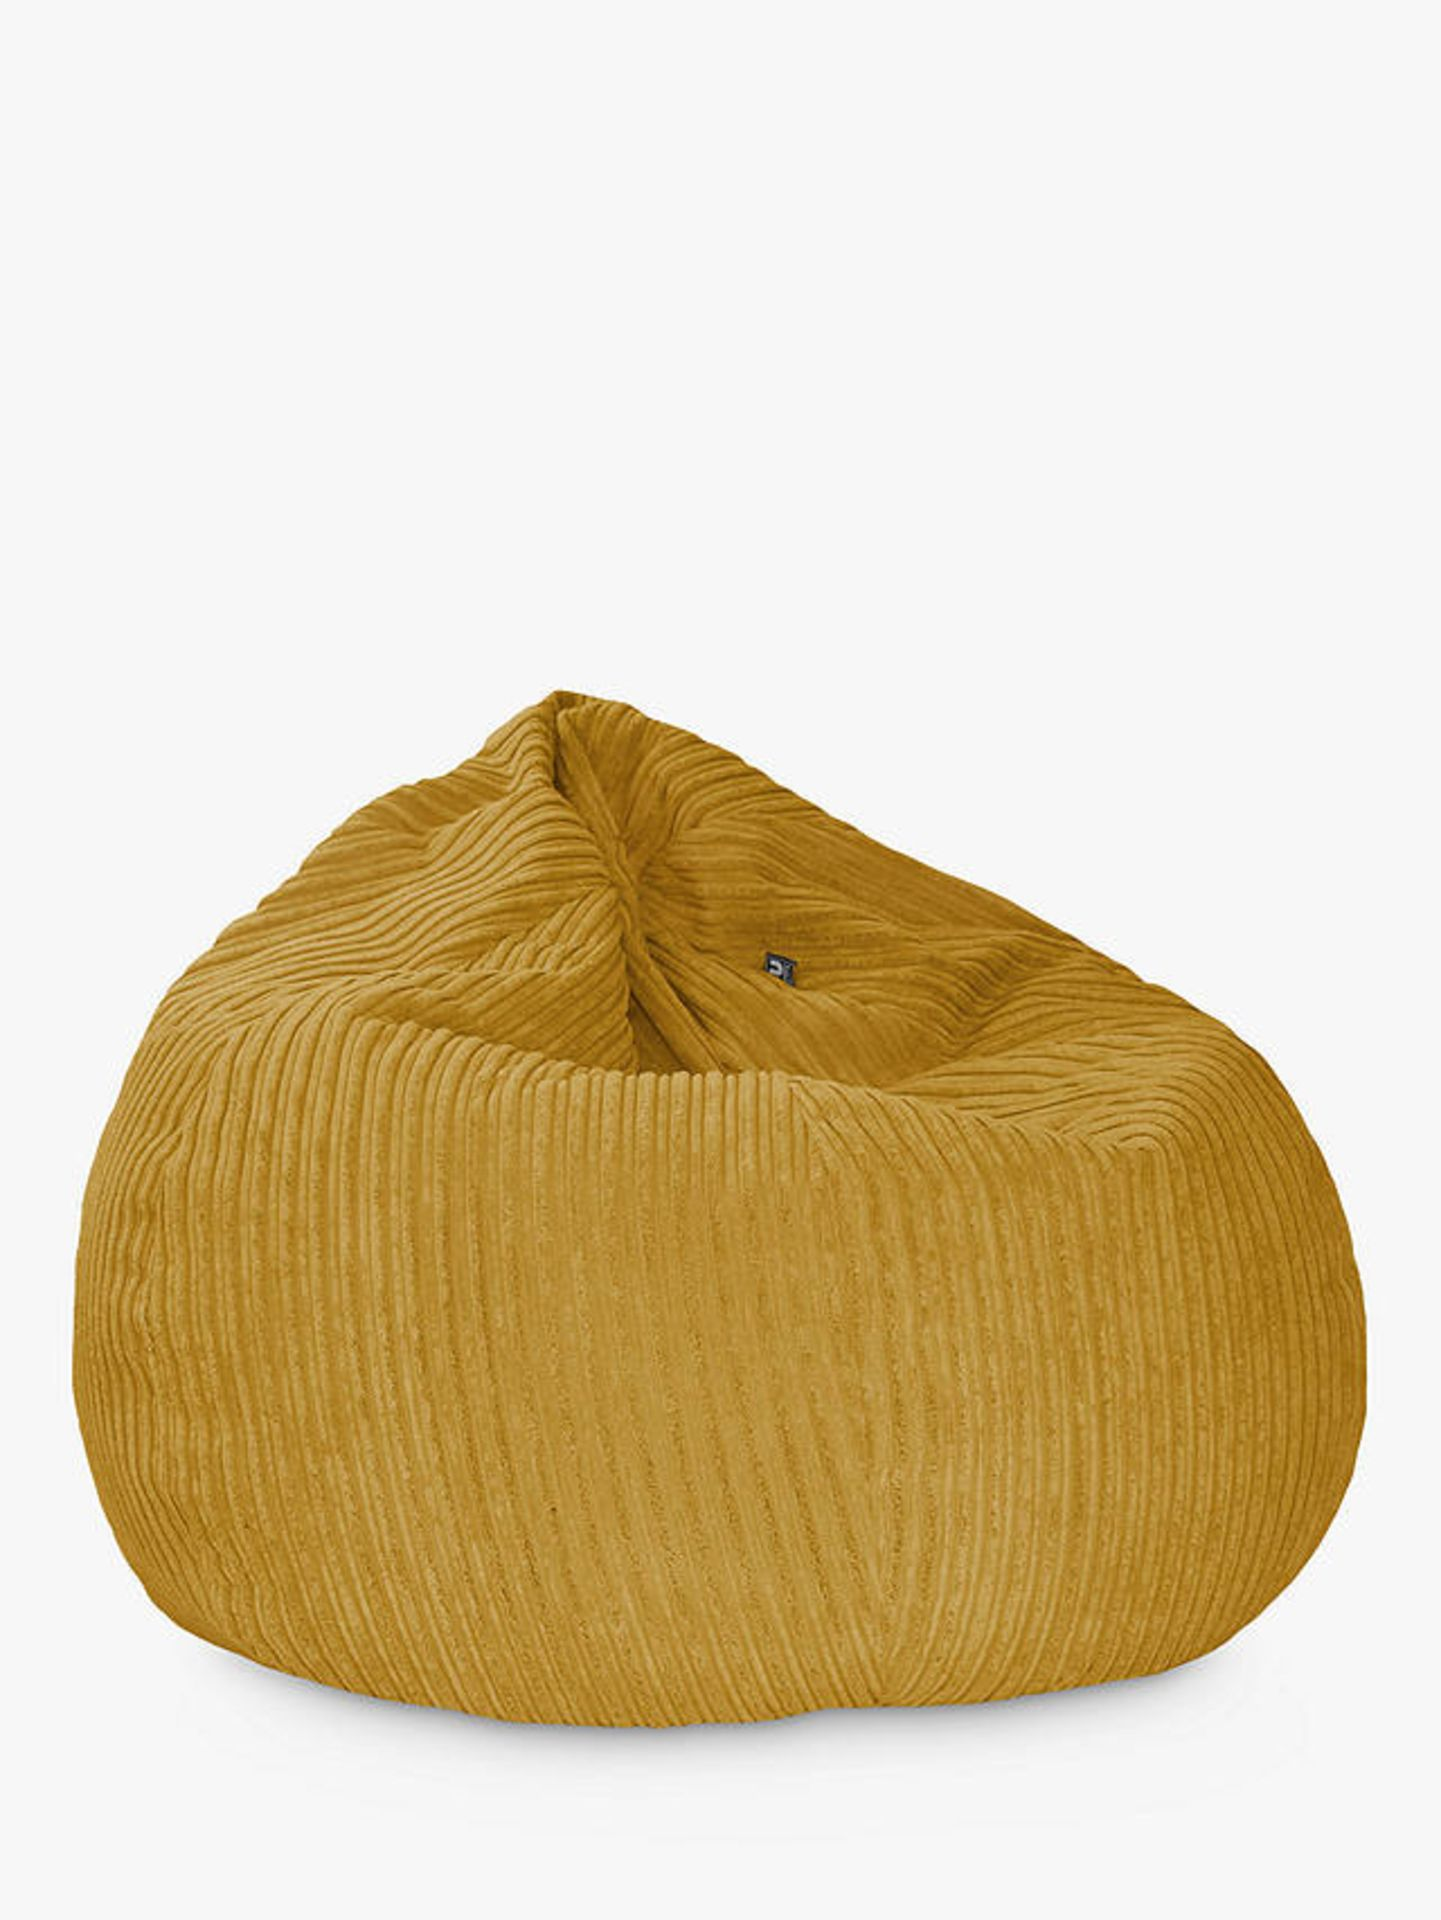 Rucomfy jumbo cord bean bag Mustard Yellow *COLLECTION ONLY*